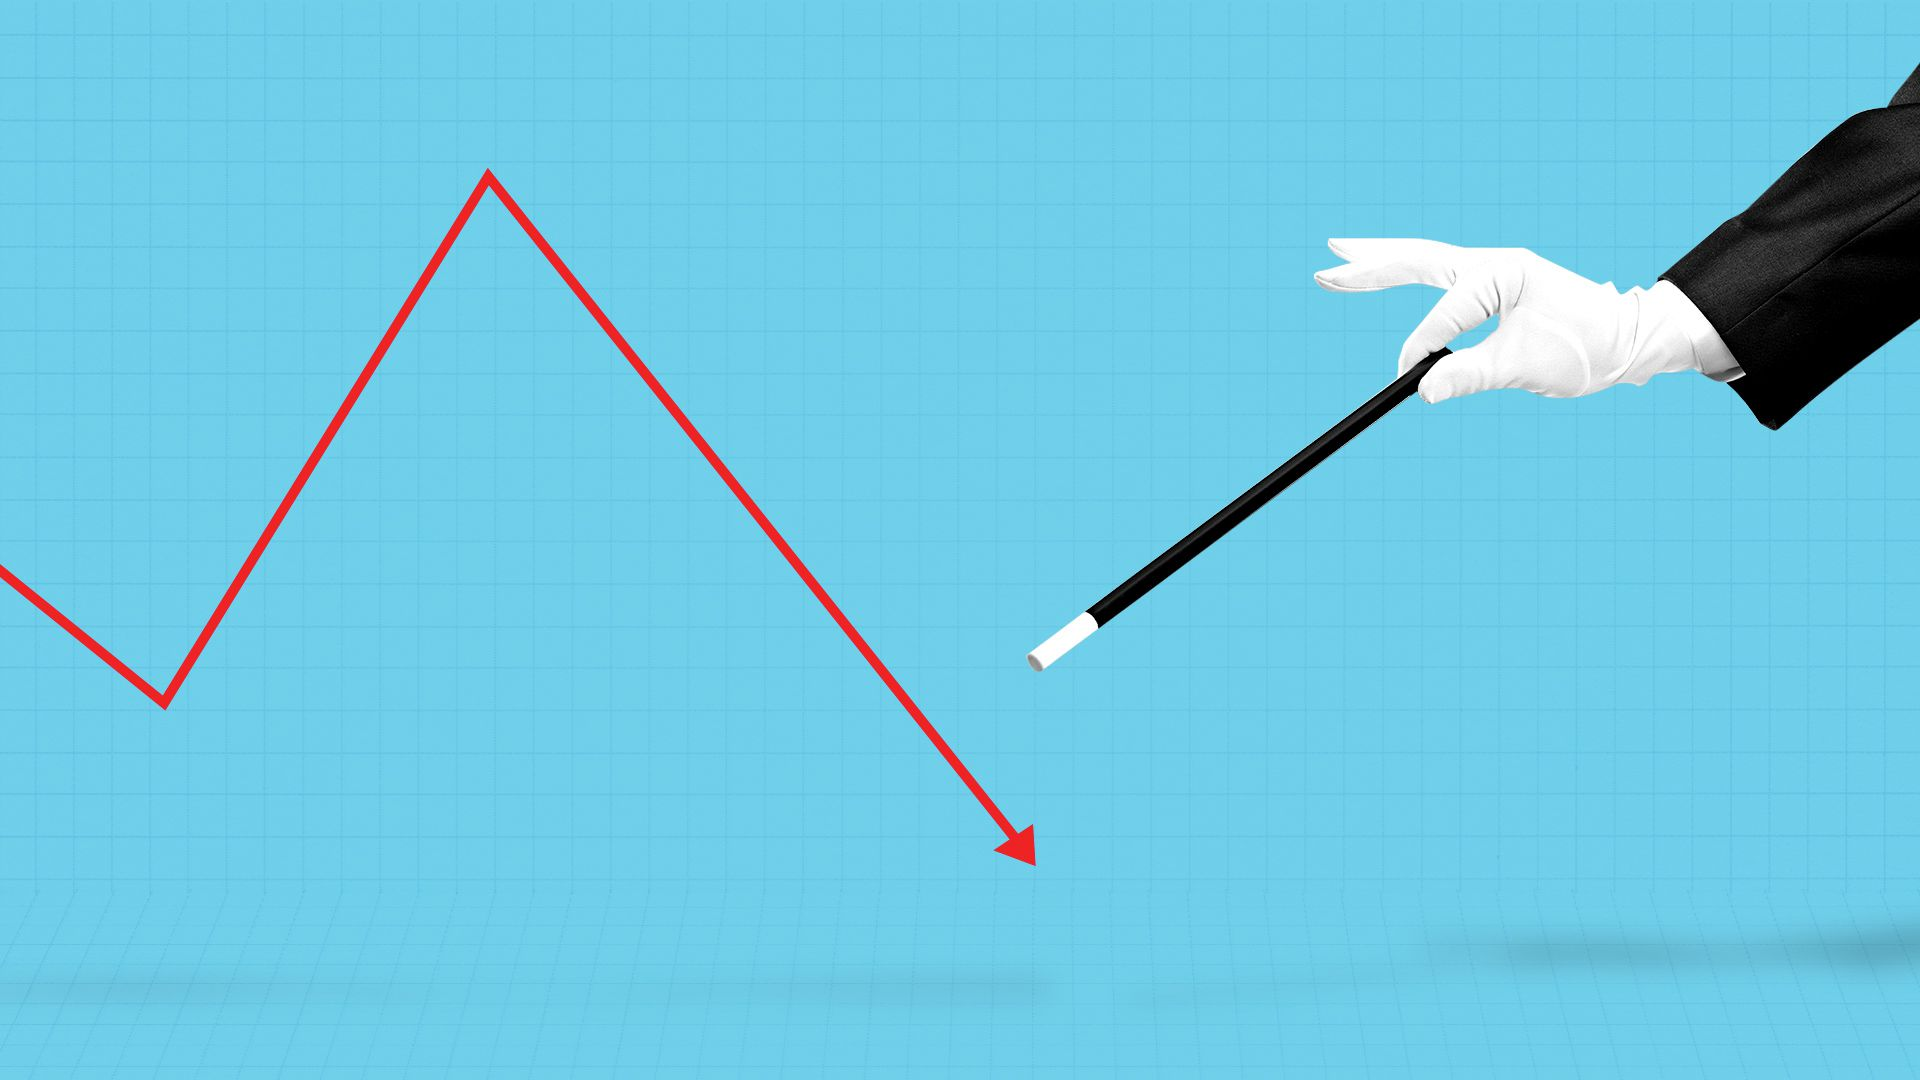 Illustration of a magician's wand next to a downward trending market line.